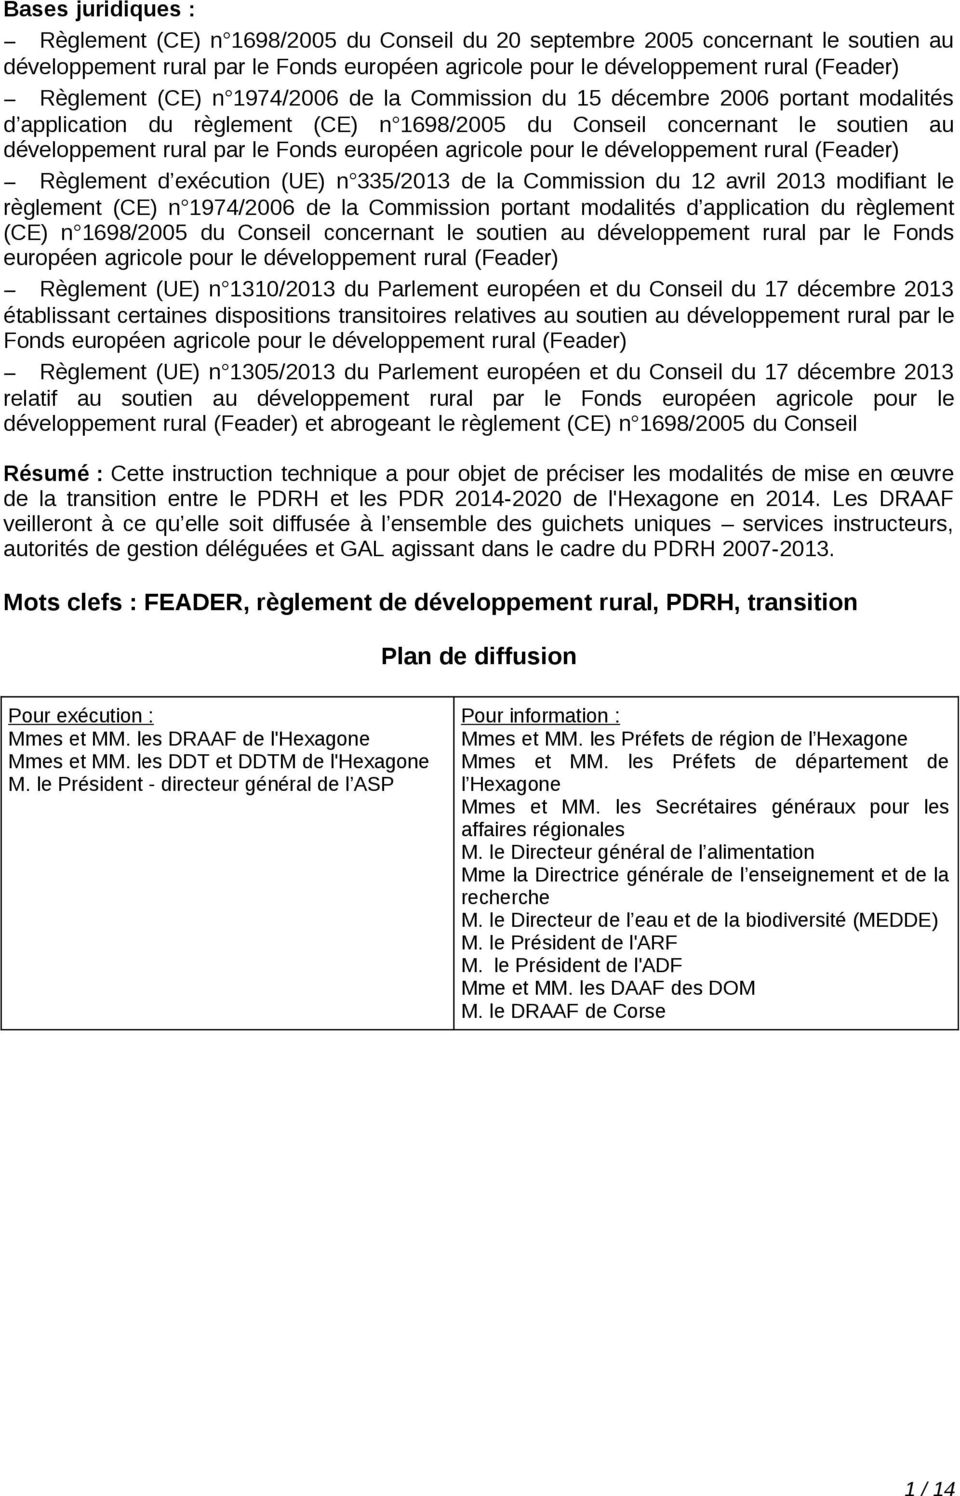 européen agricole pour le développement rural (Feader) Règlement d exécution (UE) n 335/2013 de la Commission du 12 avril 2013 modifiant le règlement (CE) n 1974/2006 de la Commission portant